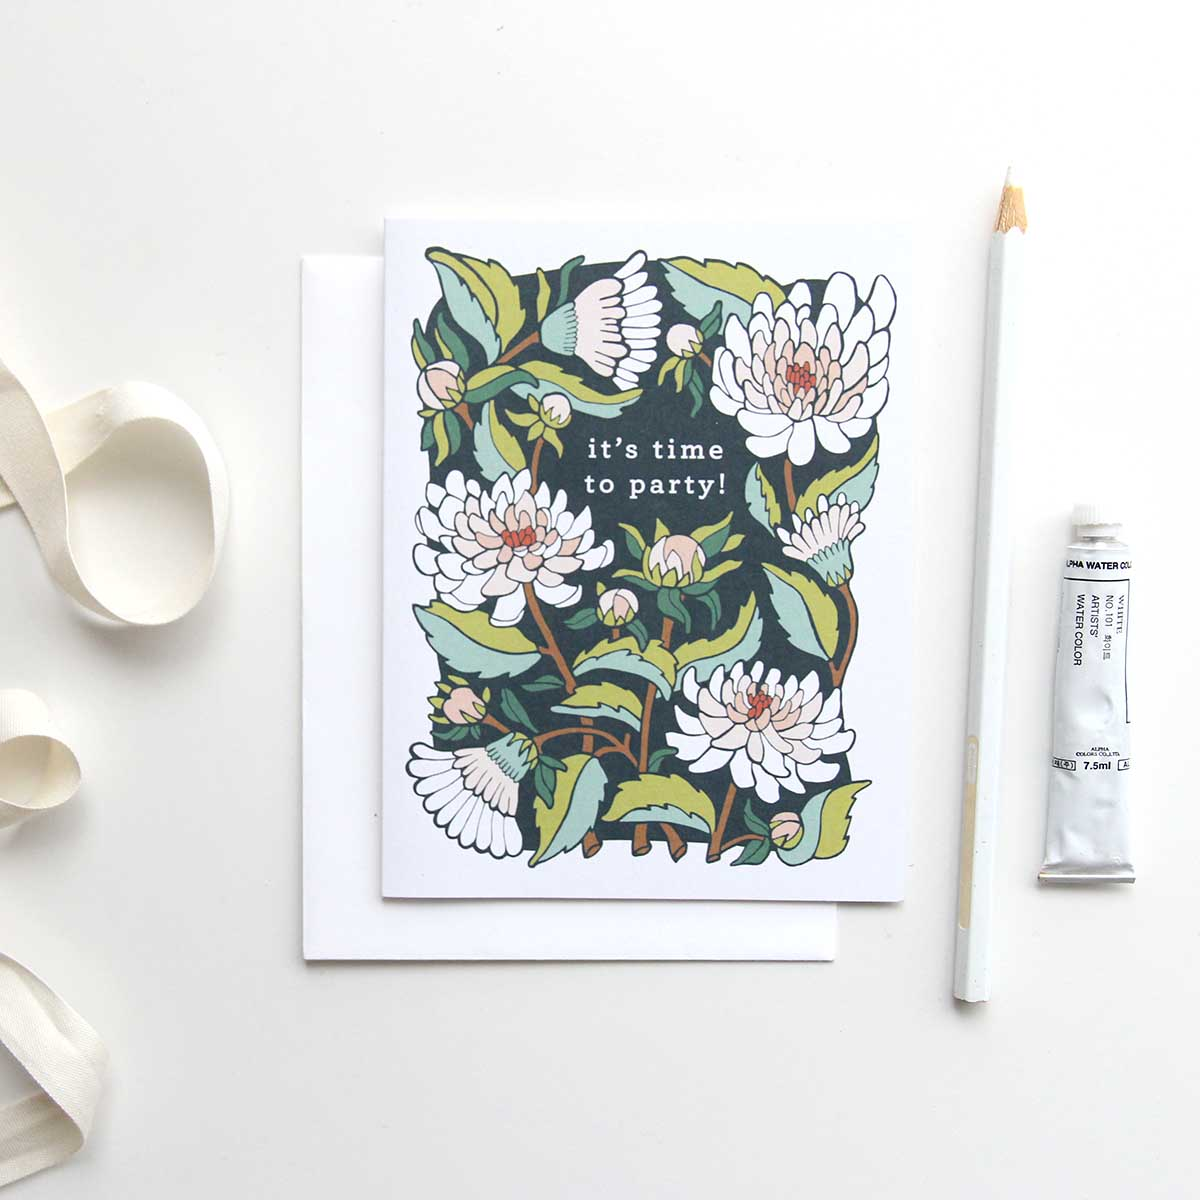 Dahlia Garden - It's Time to Party! Card by Jessie Tyree Jenness